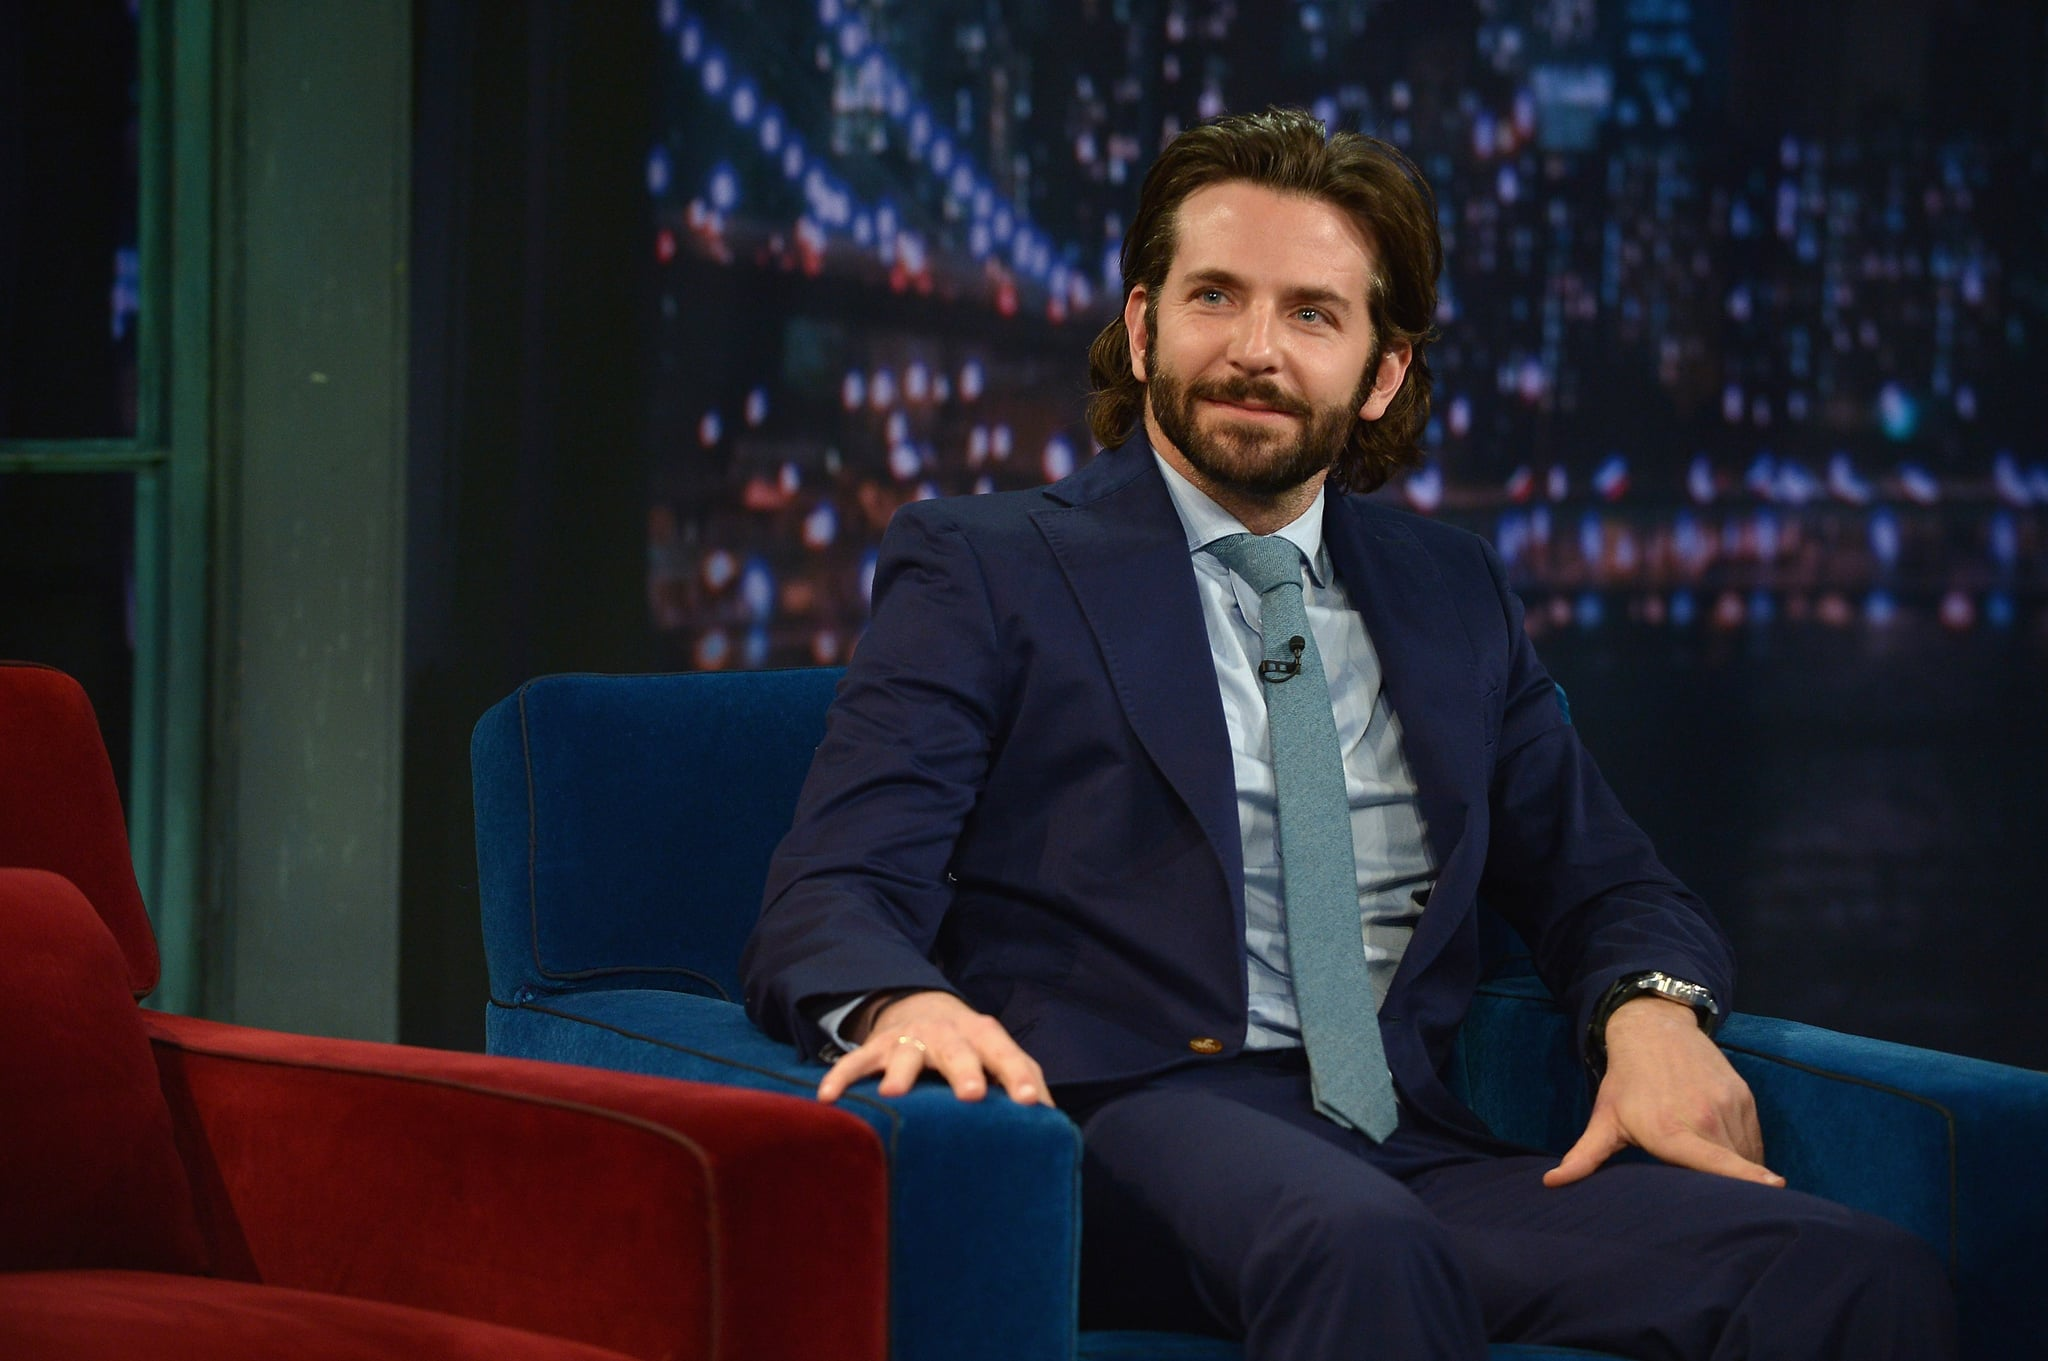 Bradley Cooper On Late Night With Jimmy Fallon Pictures Popsugar Celebrity